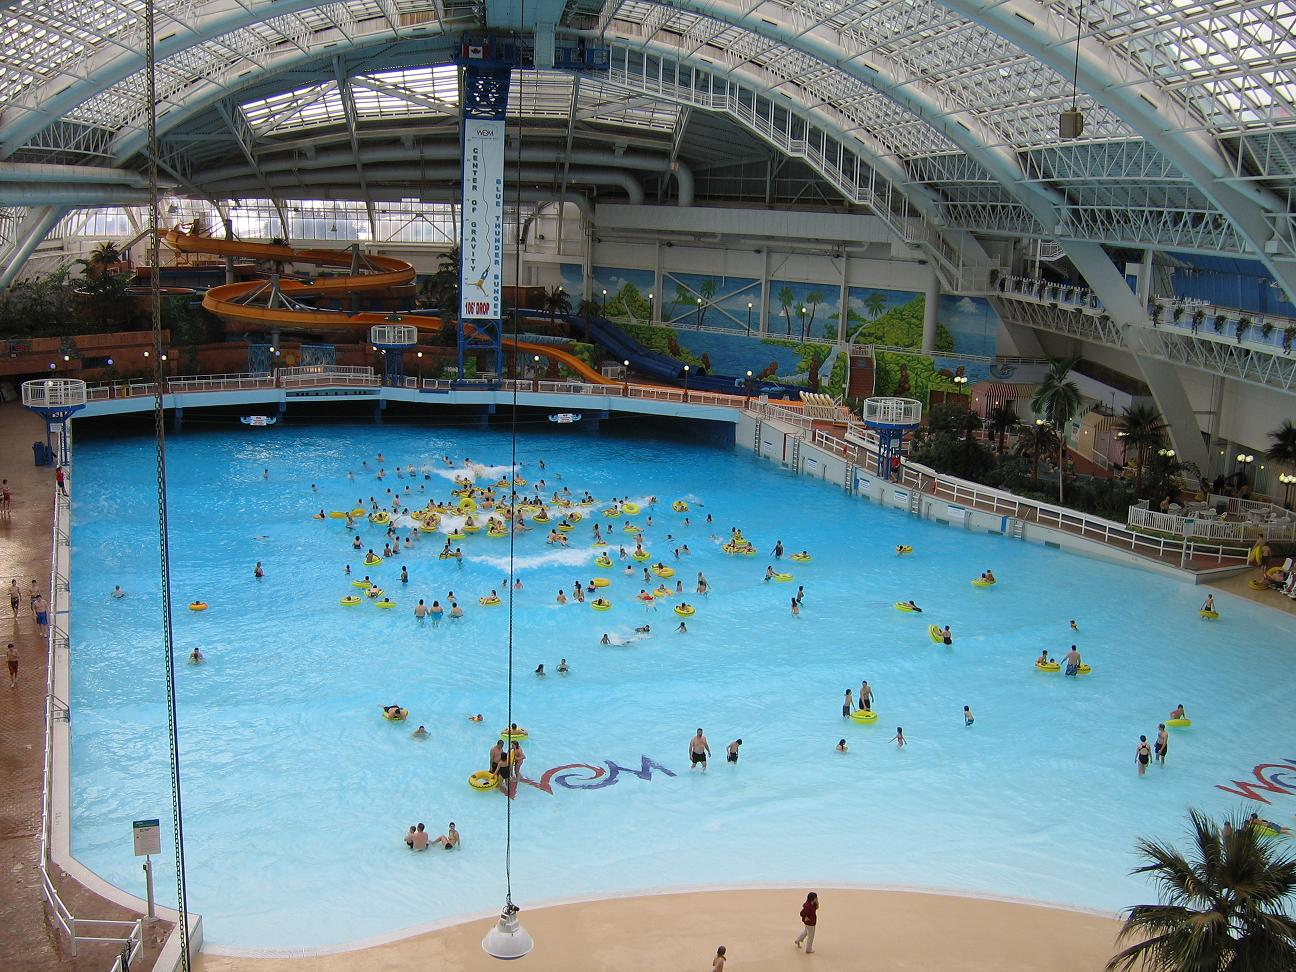 World waterpark wikipedia Cost of building a public swimming pool